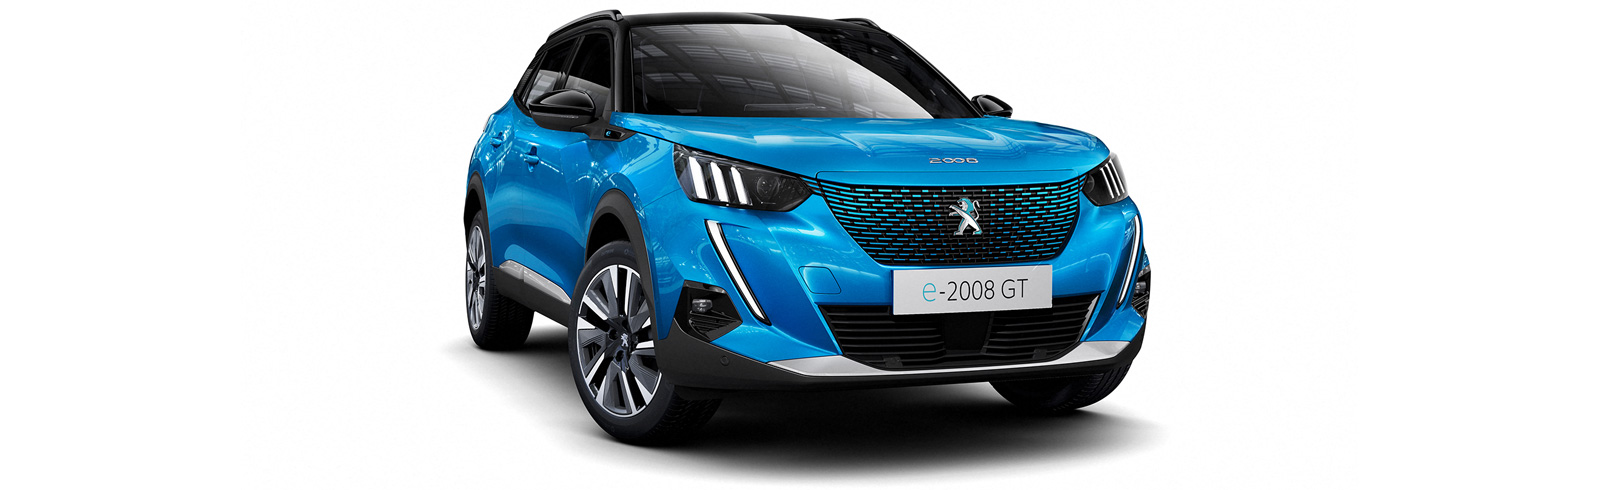 Peugeot e-2008 SUV is announced with a 50 kWh battery and a 100 kW motor